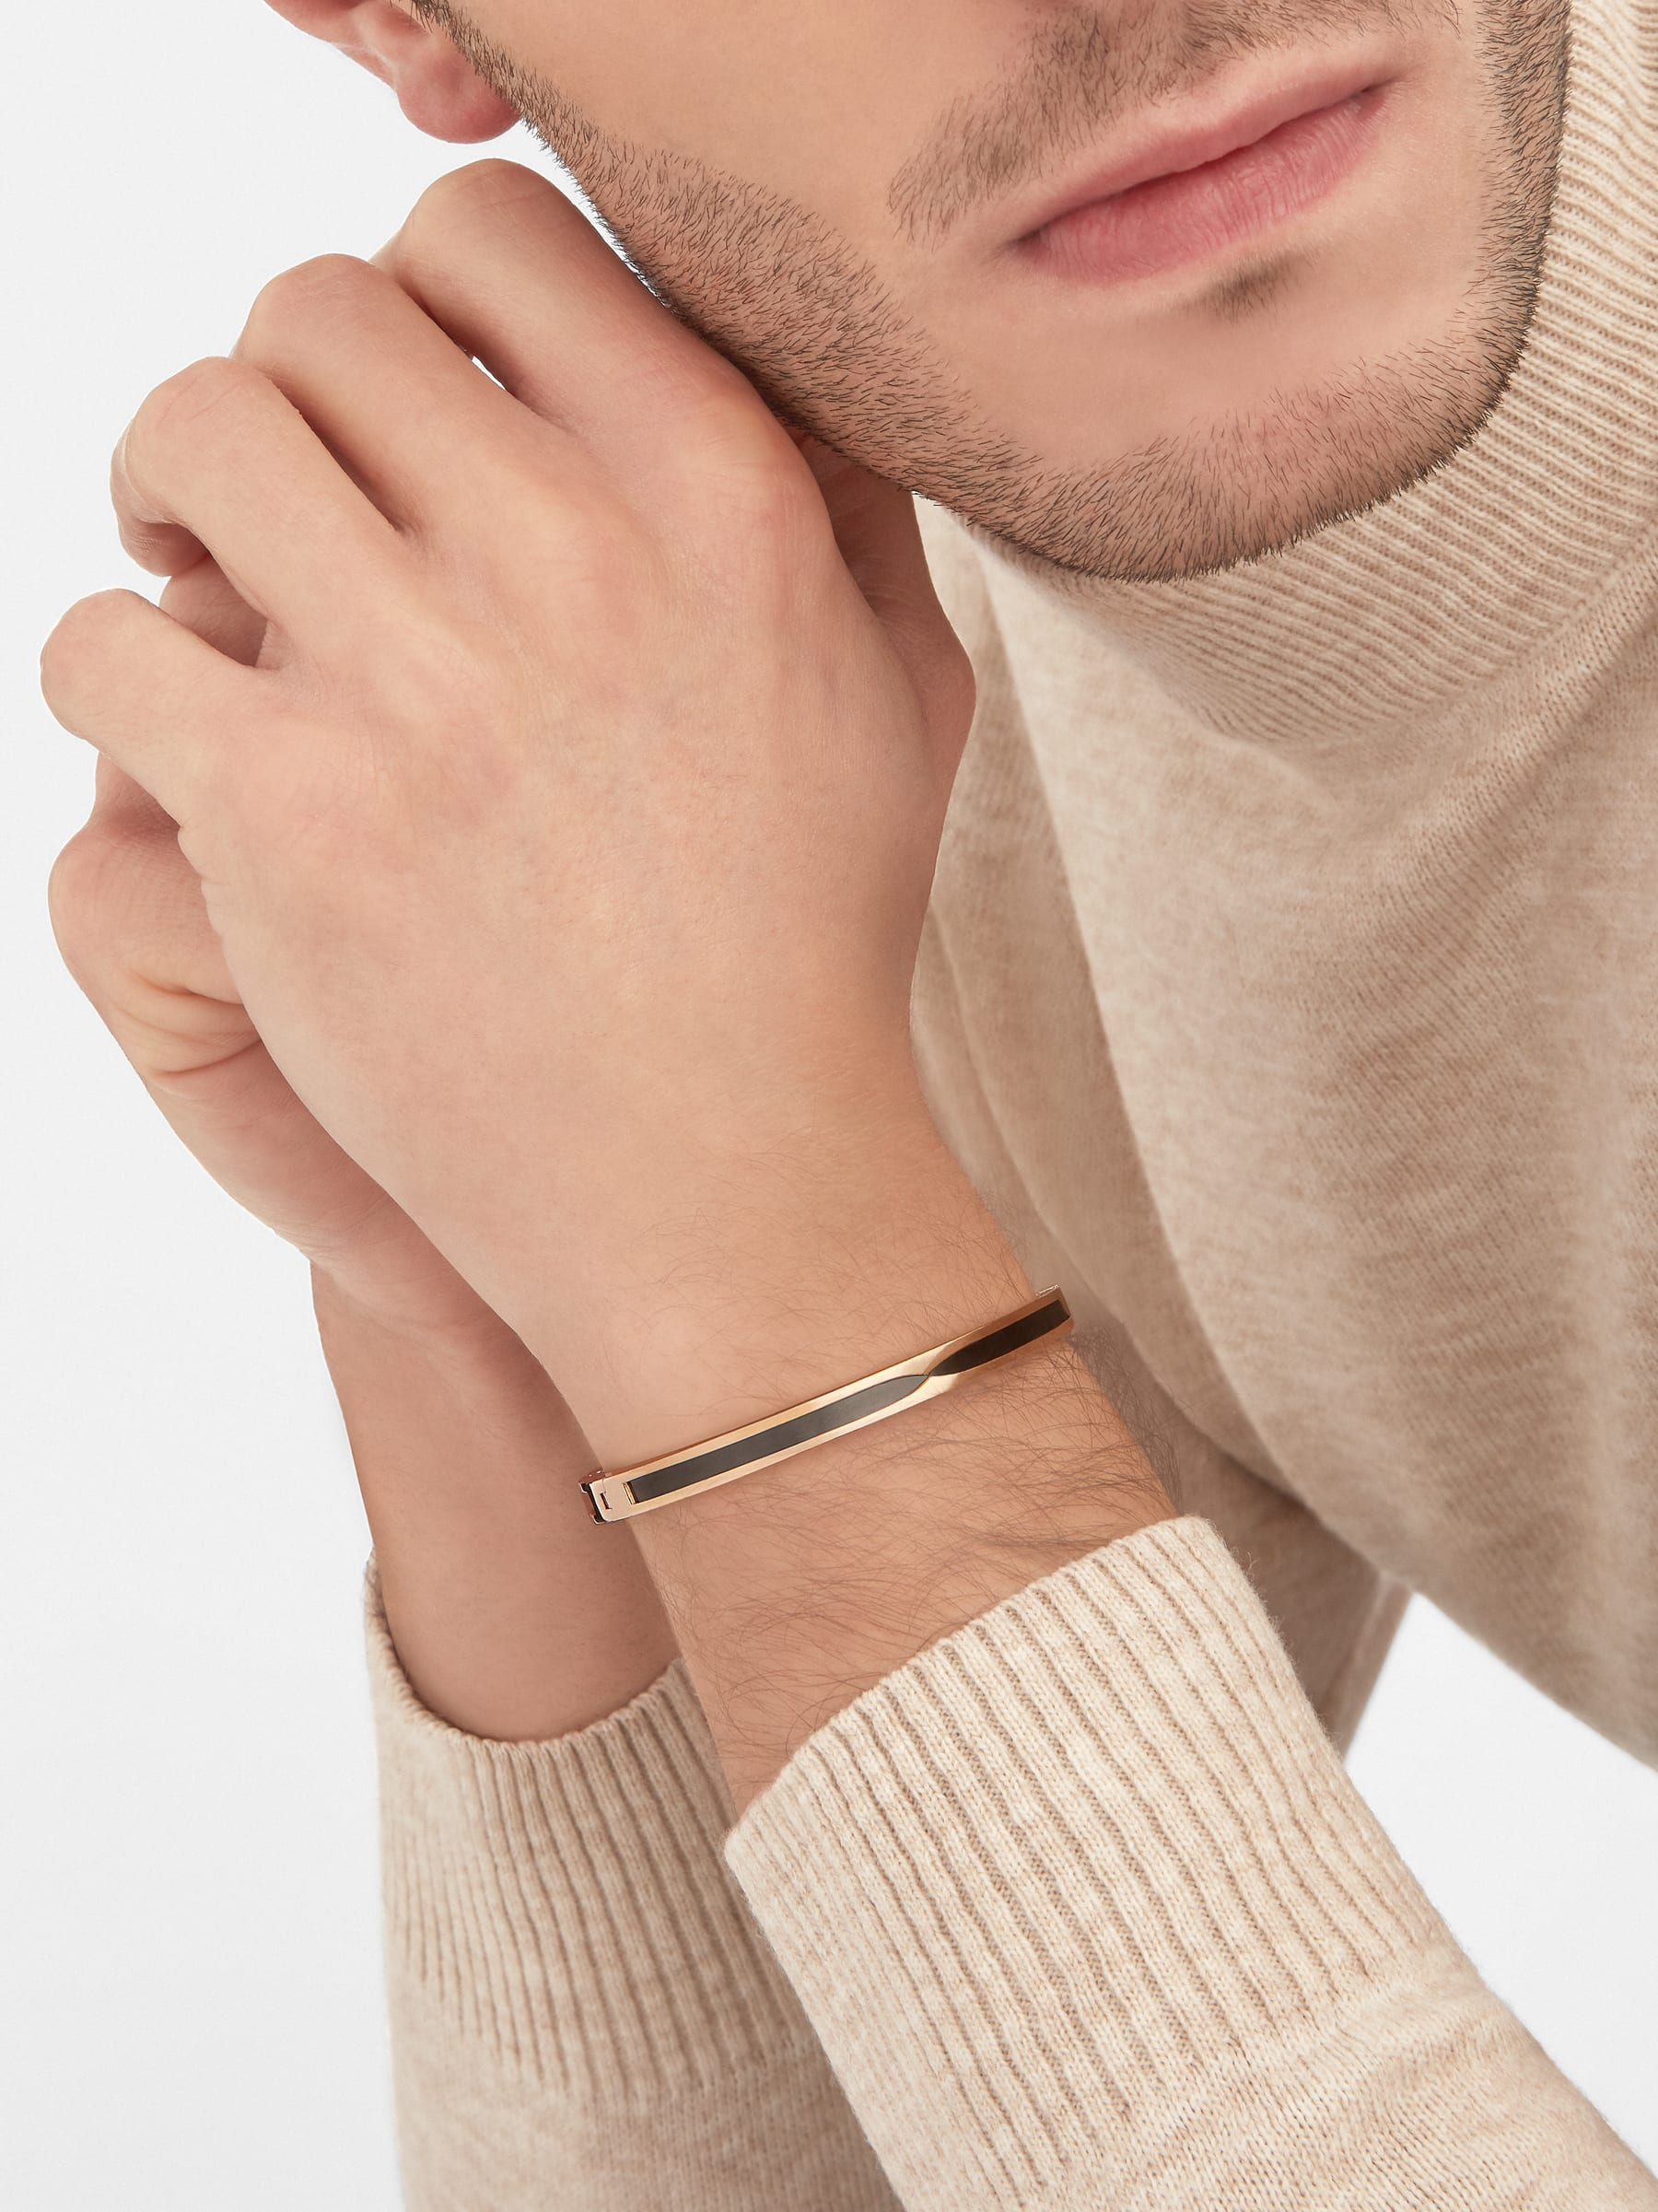 B.zero1 bangle bracelet in 18 kt rose gold with black ceramic. BR857618 image 4